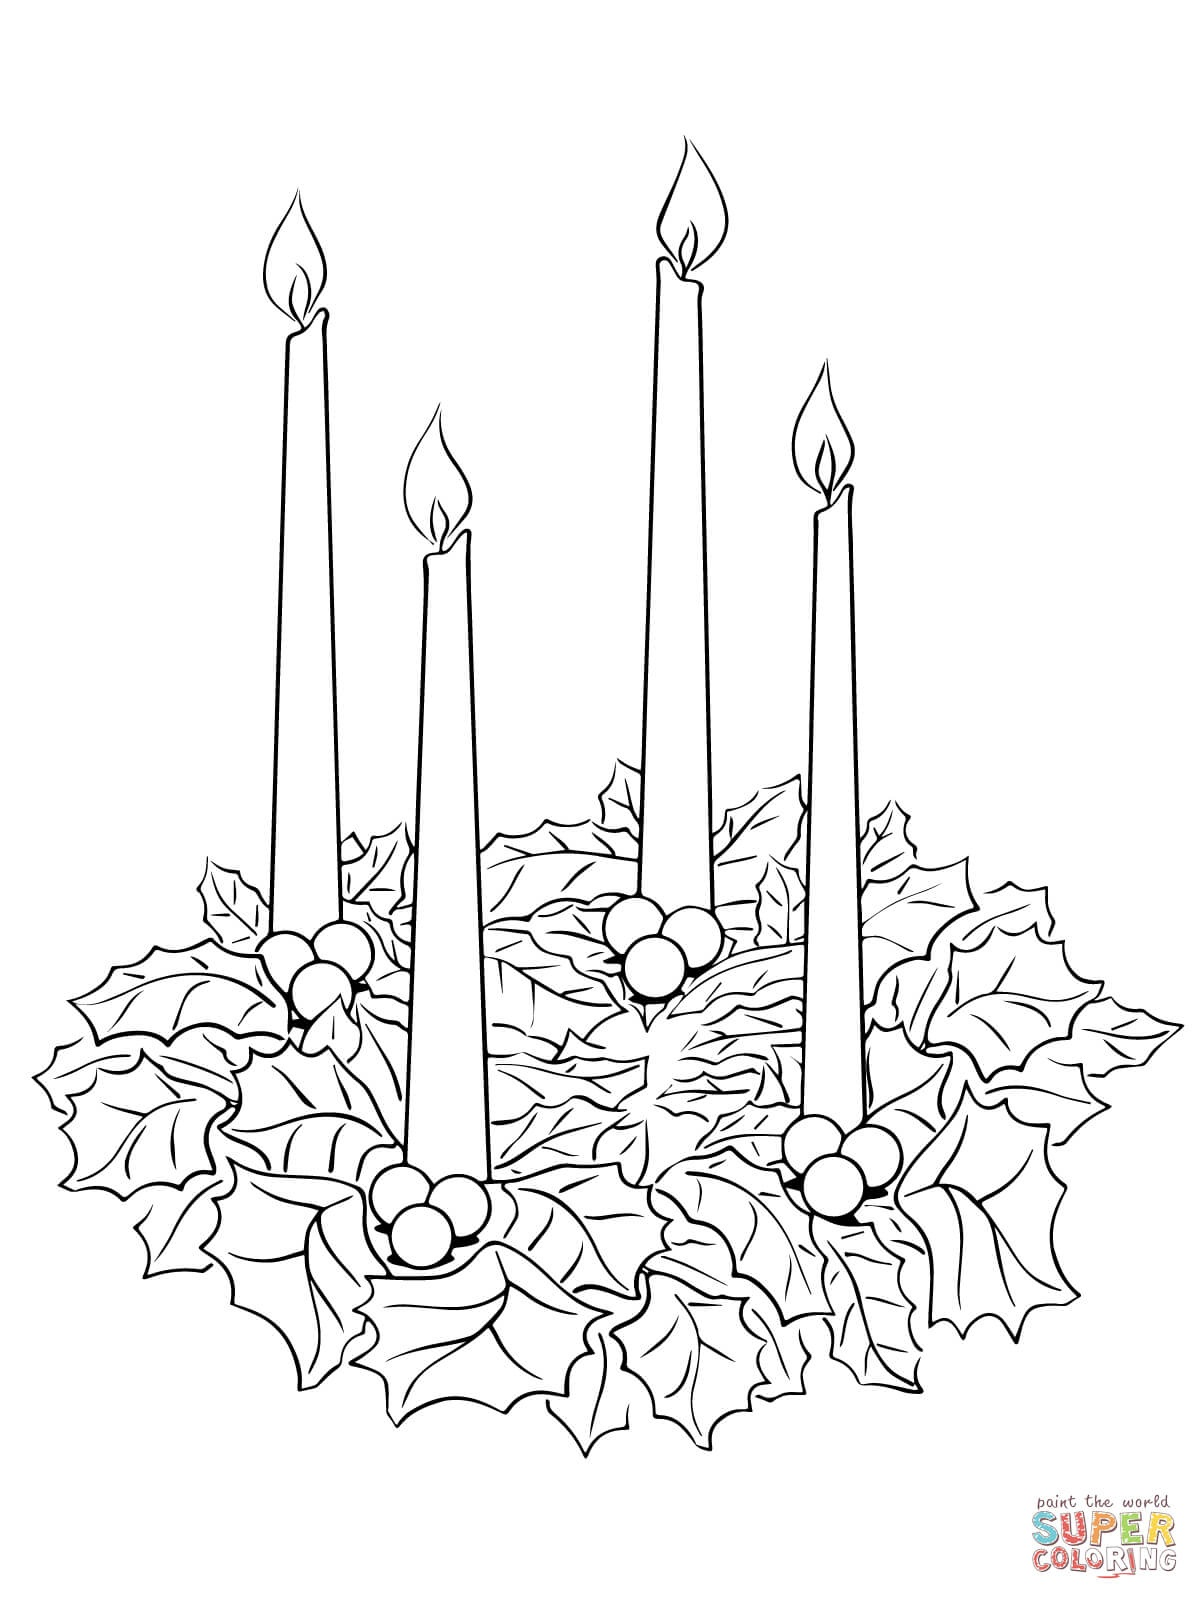 Advent Wreath Coloring Page   Free Printable Coloring Pages - Free Printable Advent Wreath